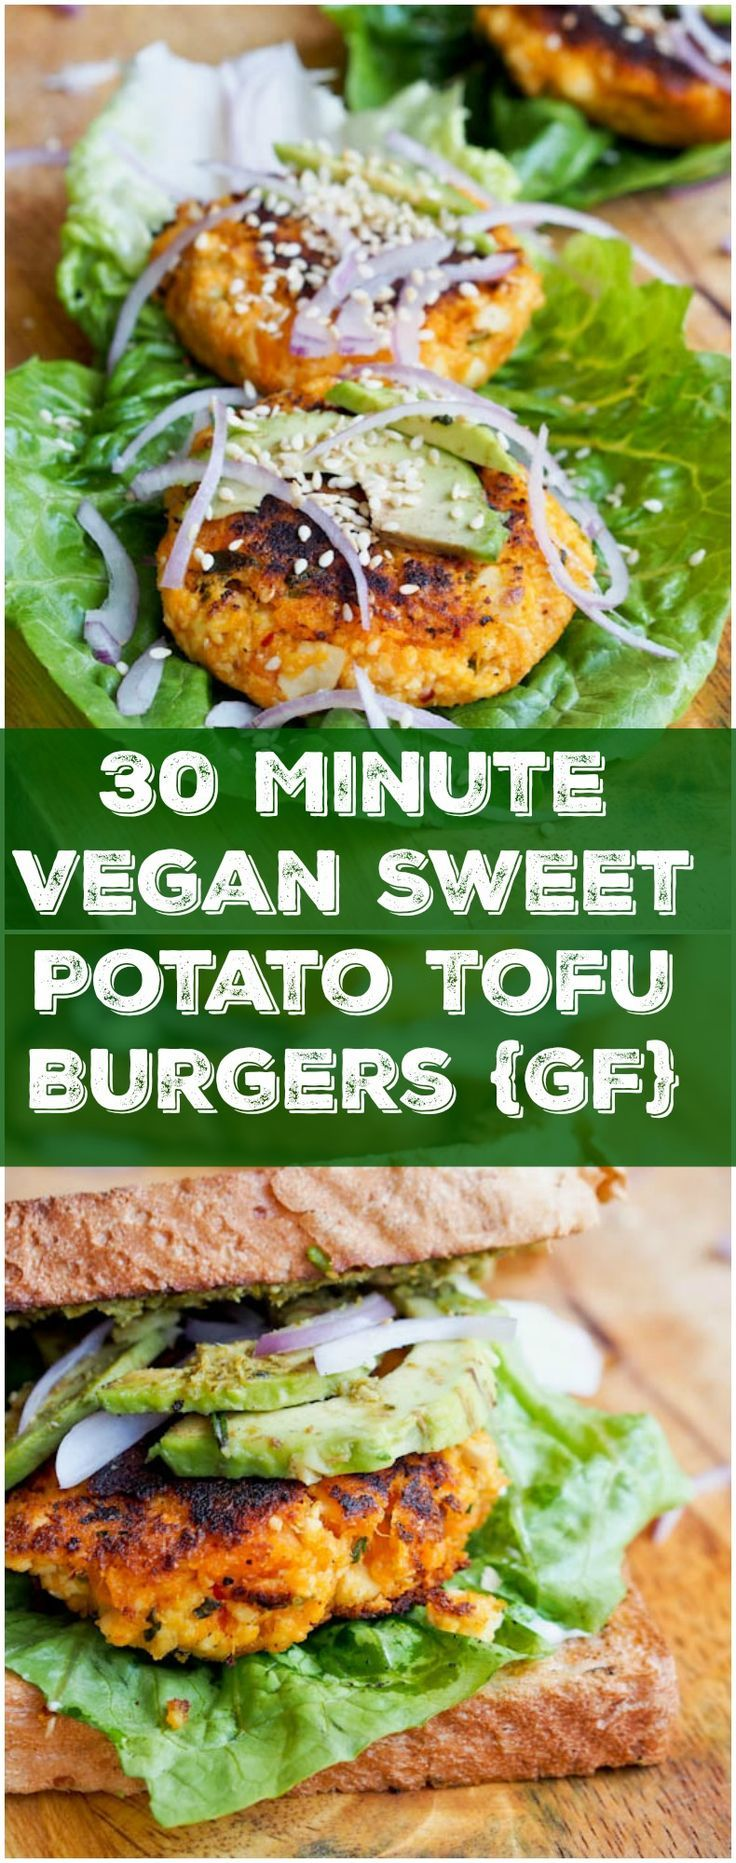 These vegan + gluten free sweet potato tofu burgers are ready in 30 minutes and only require 3 key ingredients (+ a medley of spices). Soft, and tender on the inside while lightly crispy on the outside, and full of flavor.